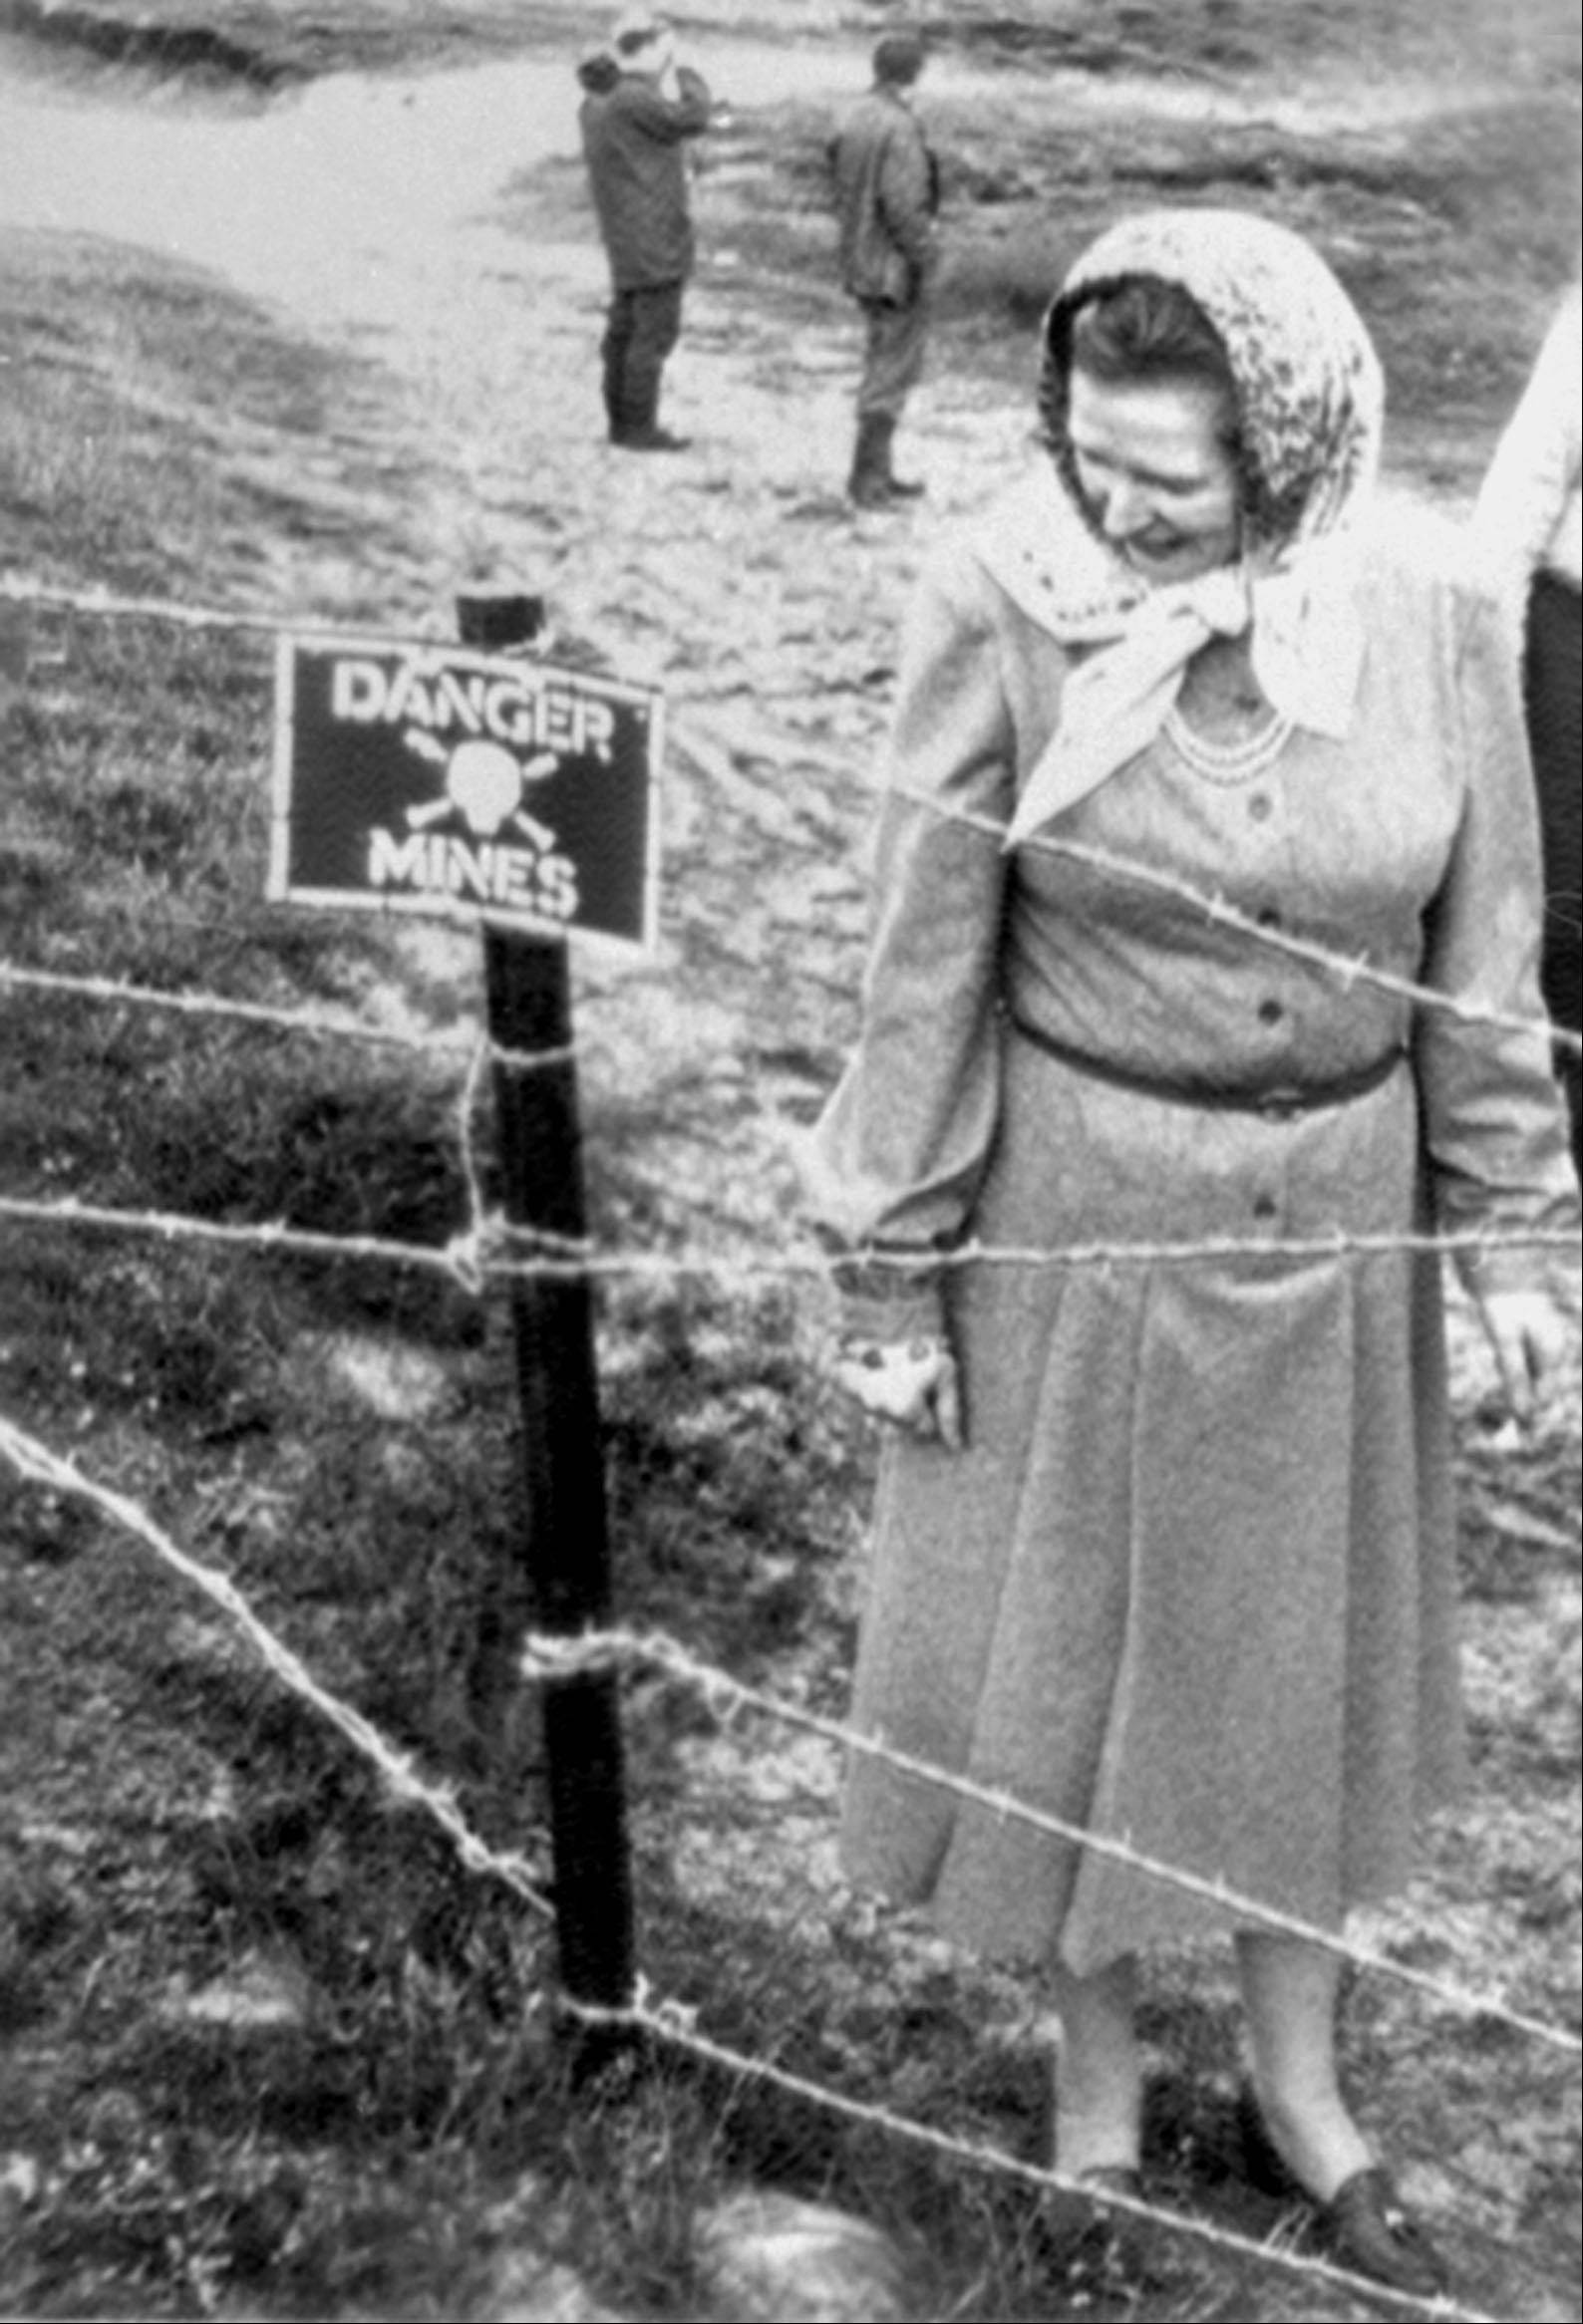 This is a March 10, 1983 file photo of former Prime Minister Margaret Thatcher examining a minefield during her visit to the Falkland Islands when the Royal Engineers took her on a tour of the Rookery Bay beach, a heavily mined area in the Falklands. Thatcher�s former spokesman, Tim Bell, said that the former prime minister had died Monday April 8, 2013 of a stroke. She was 87.